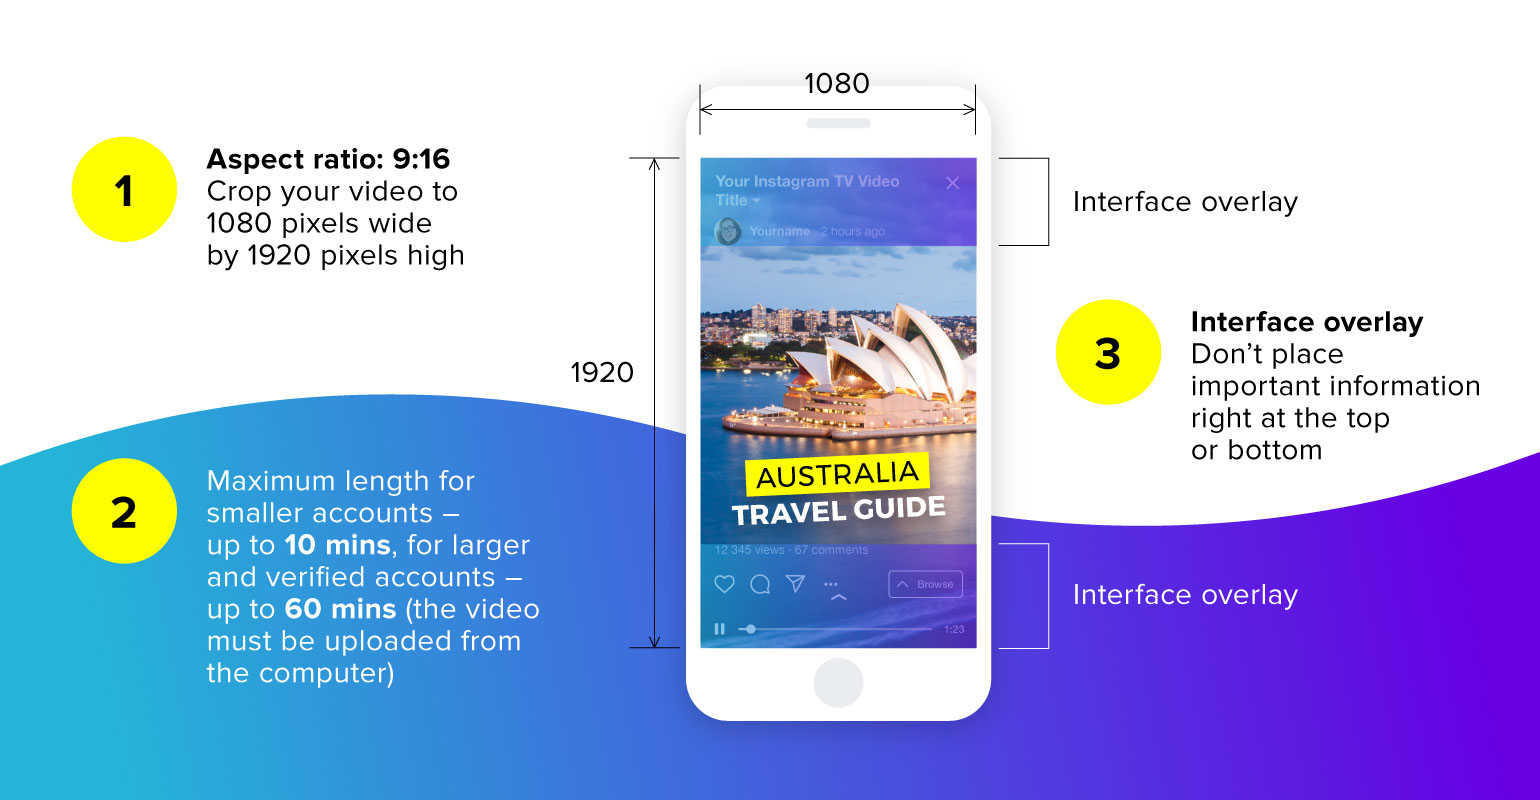 IGTV interface overview